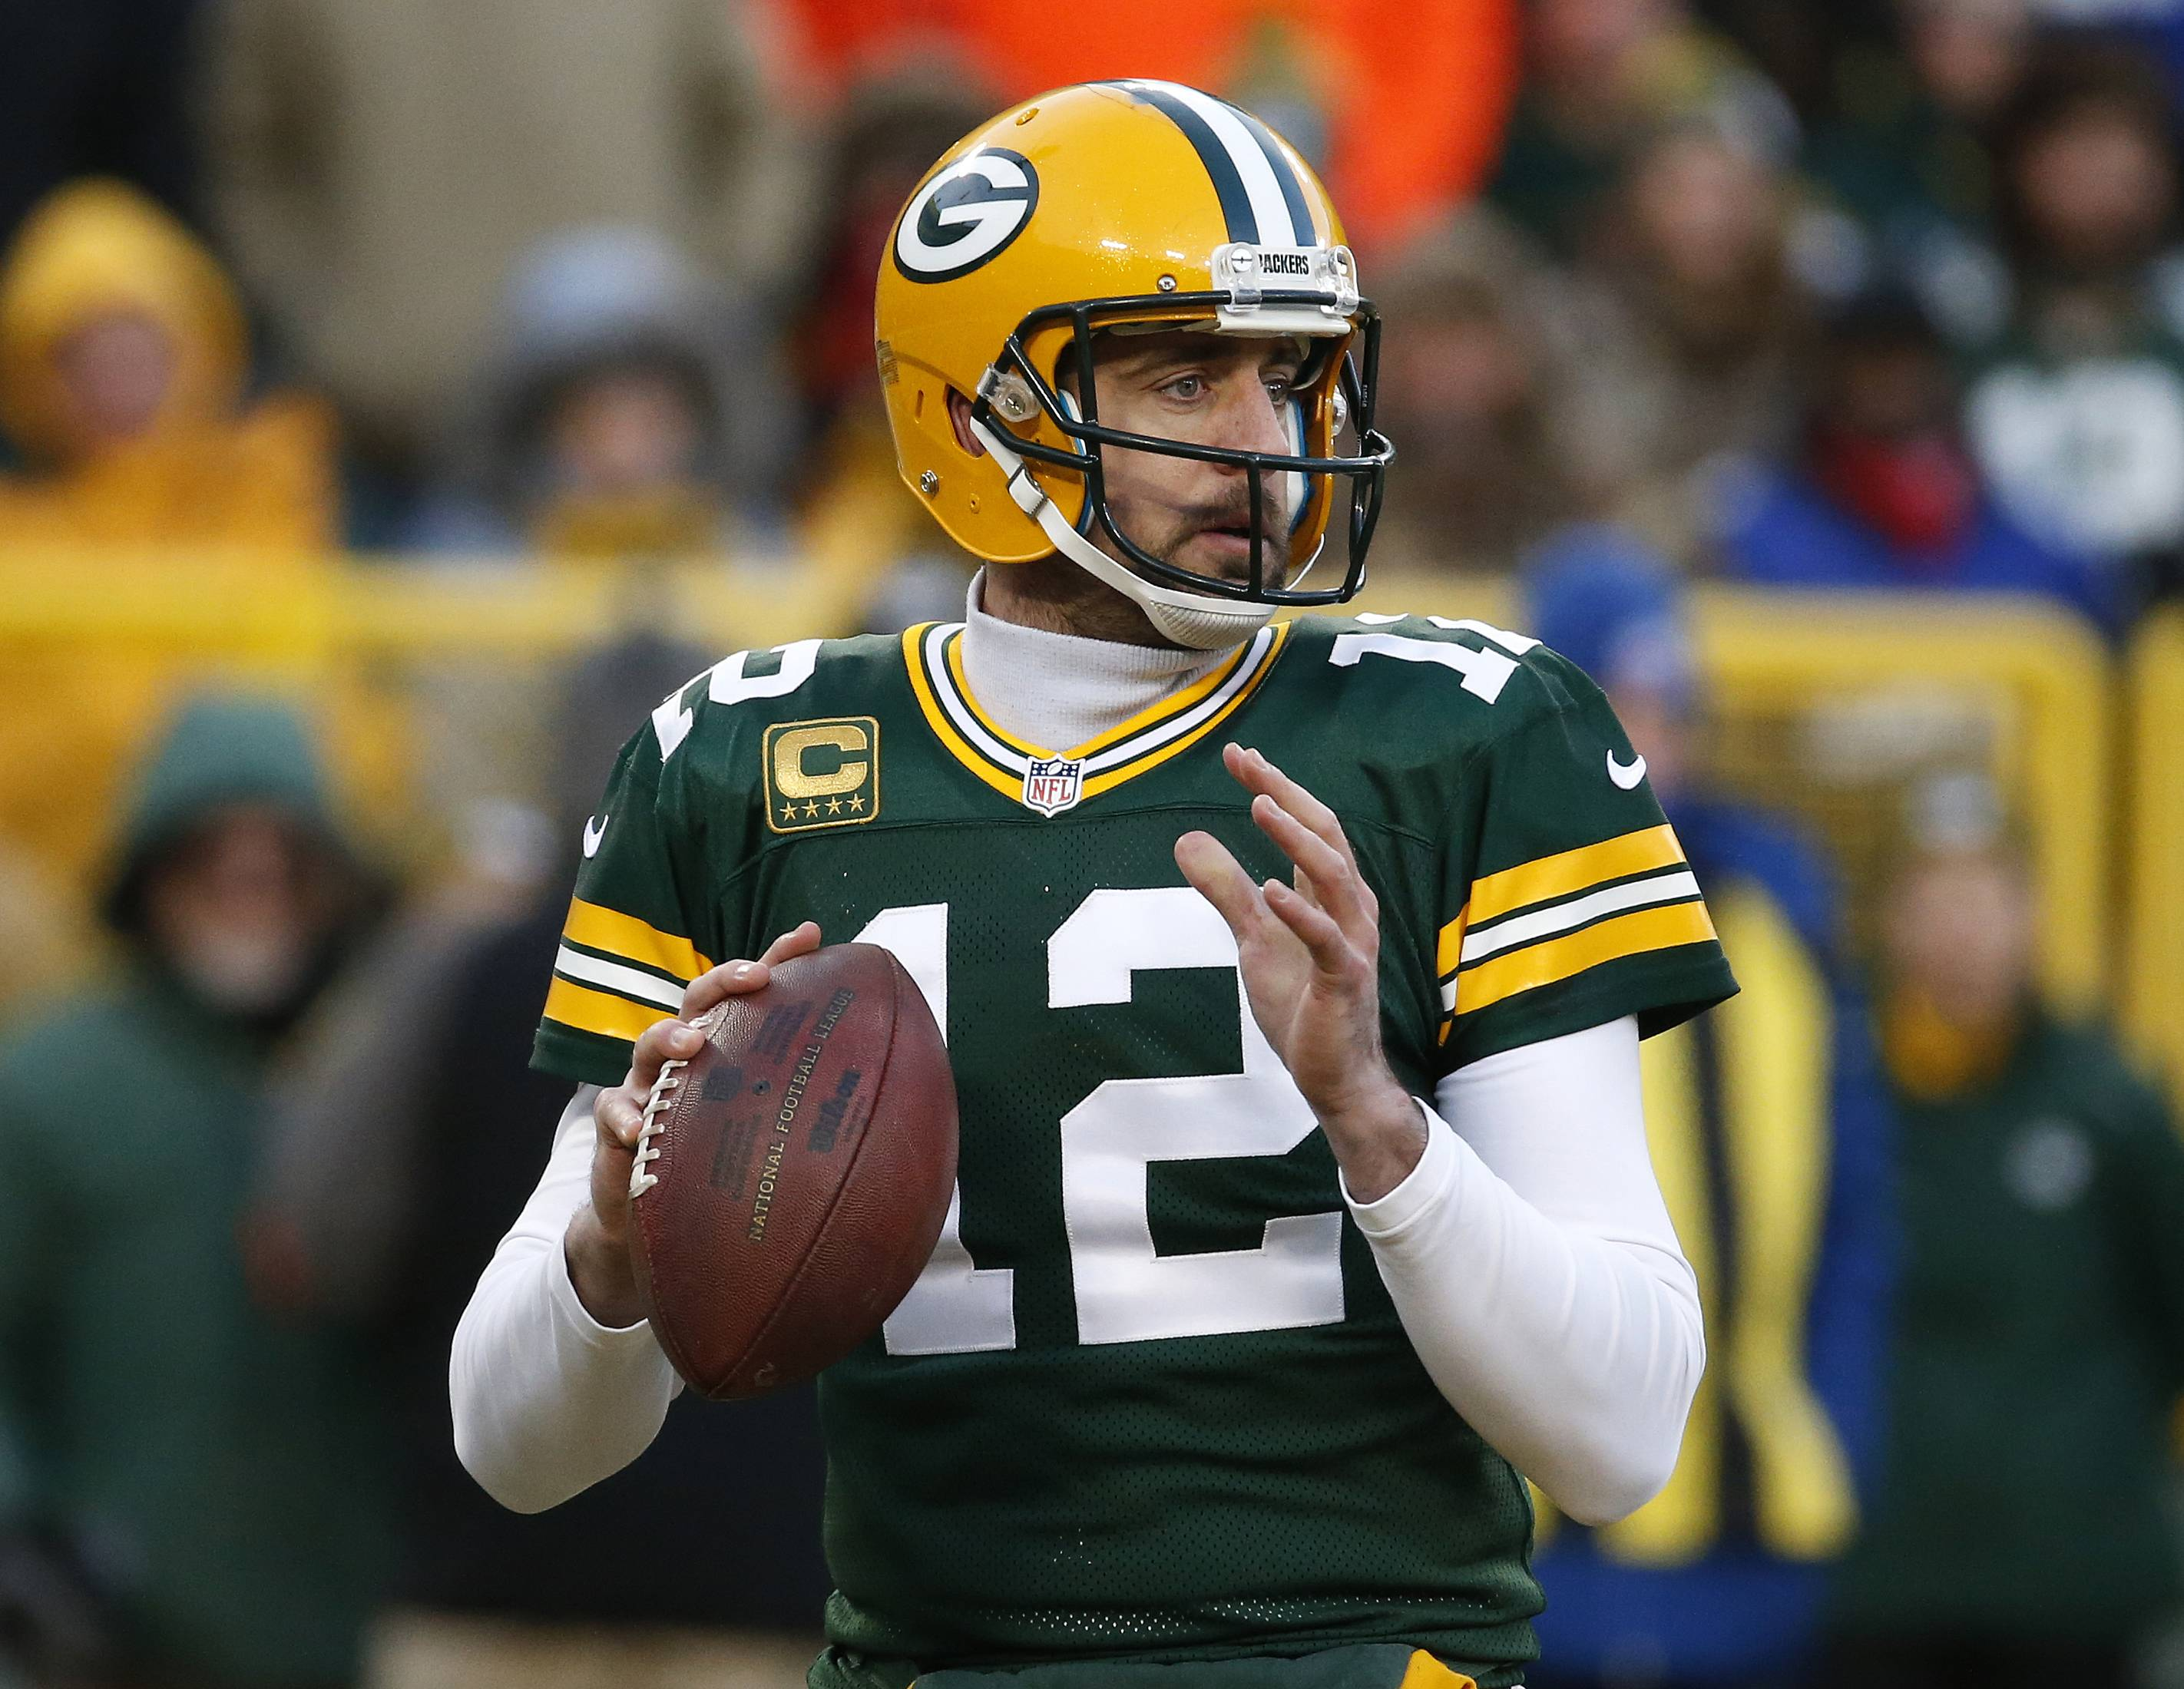 Green Bay Packers quarterback Aaron Rodgers is playing at an elite level that few quarterbacks have ever approached. He has 24 TD passes and just 1 interception in his last nine games. If the Falcons want to beat him, they'll need to figure out a way to contain him.